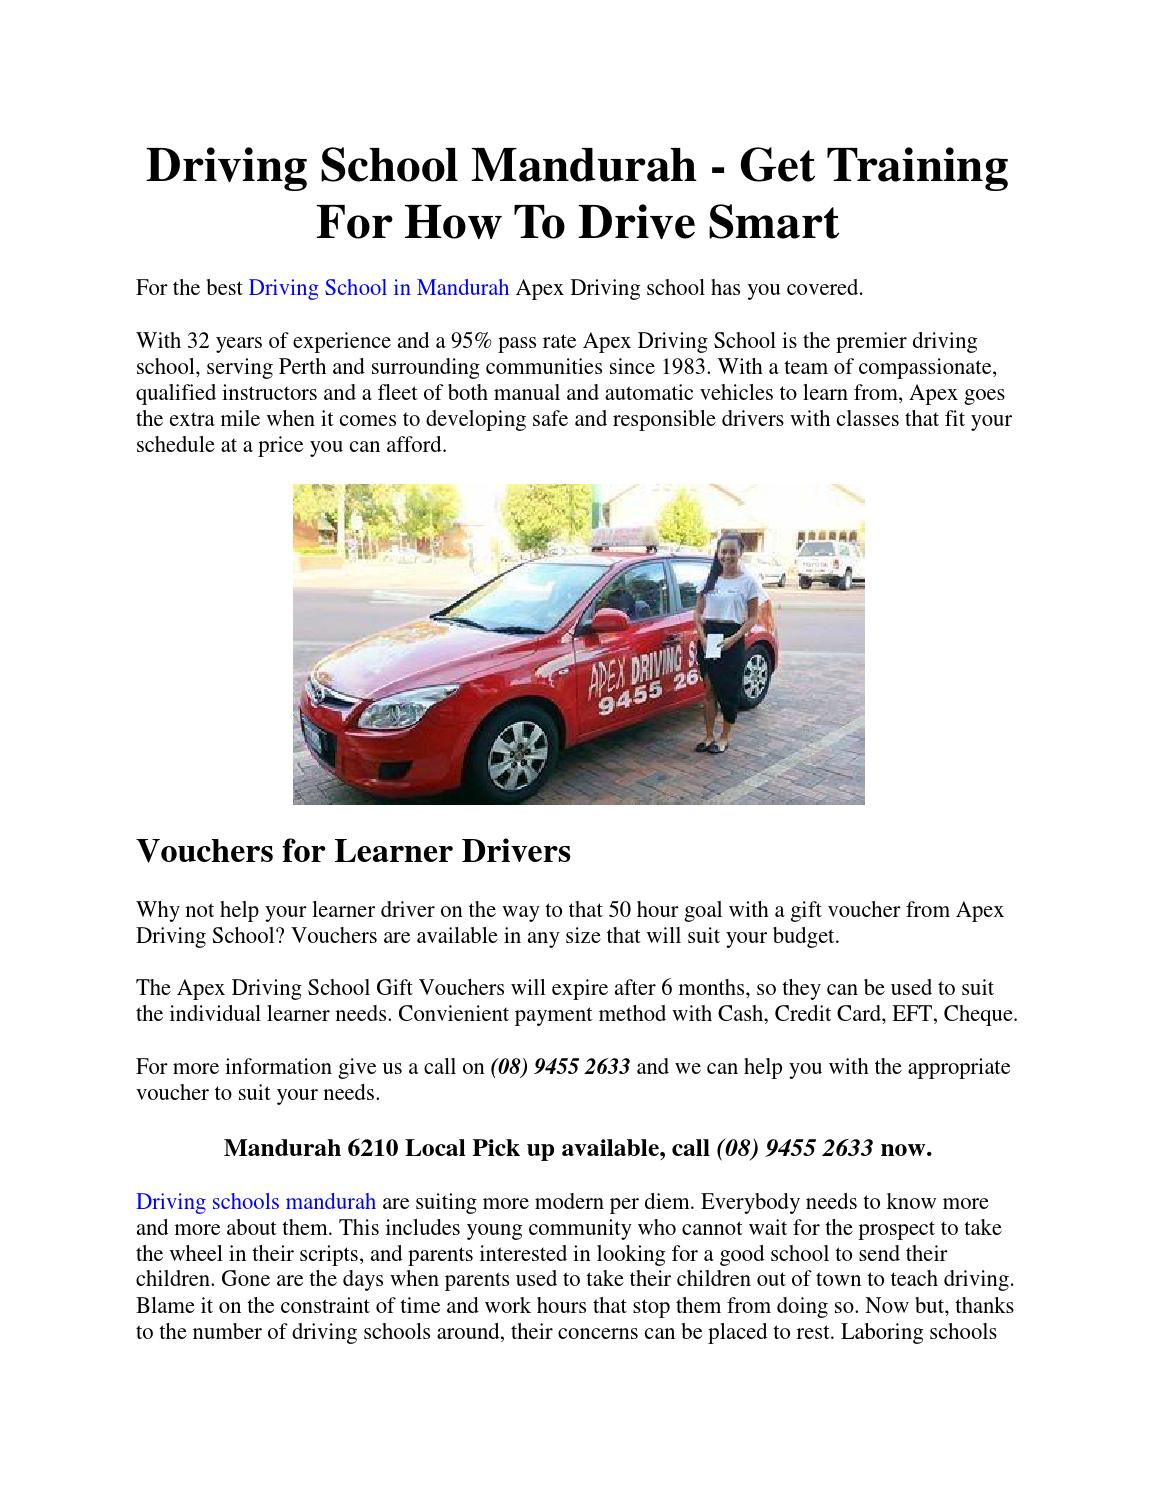 Driving School Mandurah Get Training For How To Drive Smart By Gregorysergio Issuu